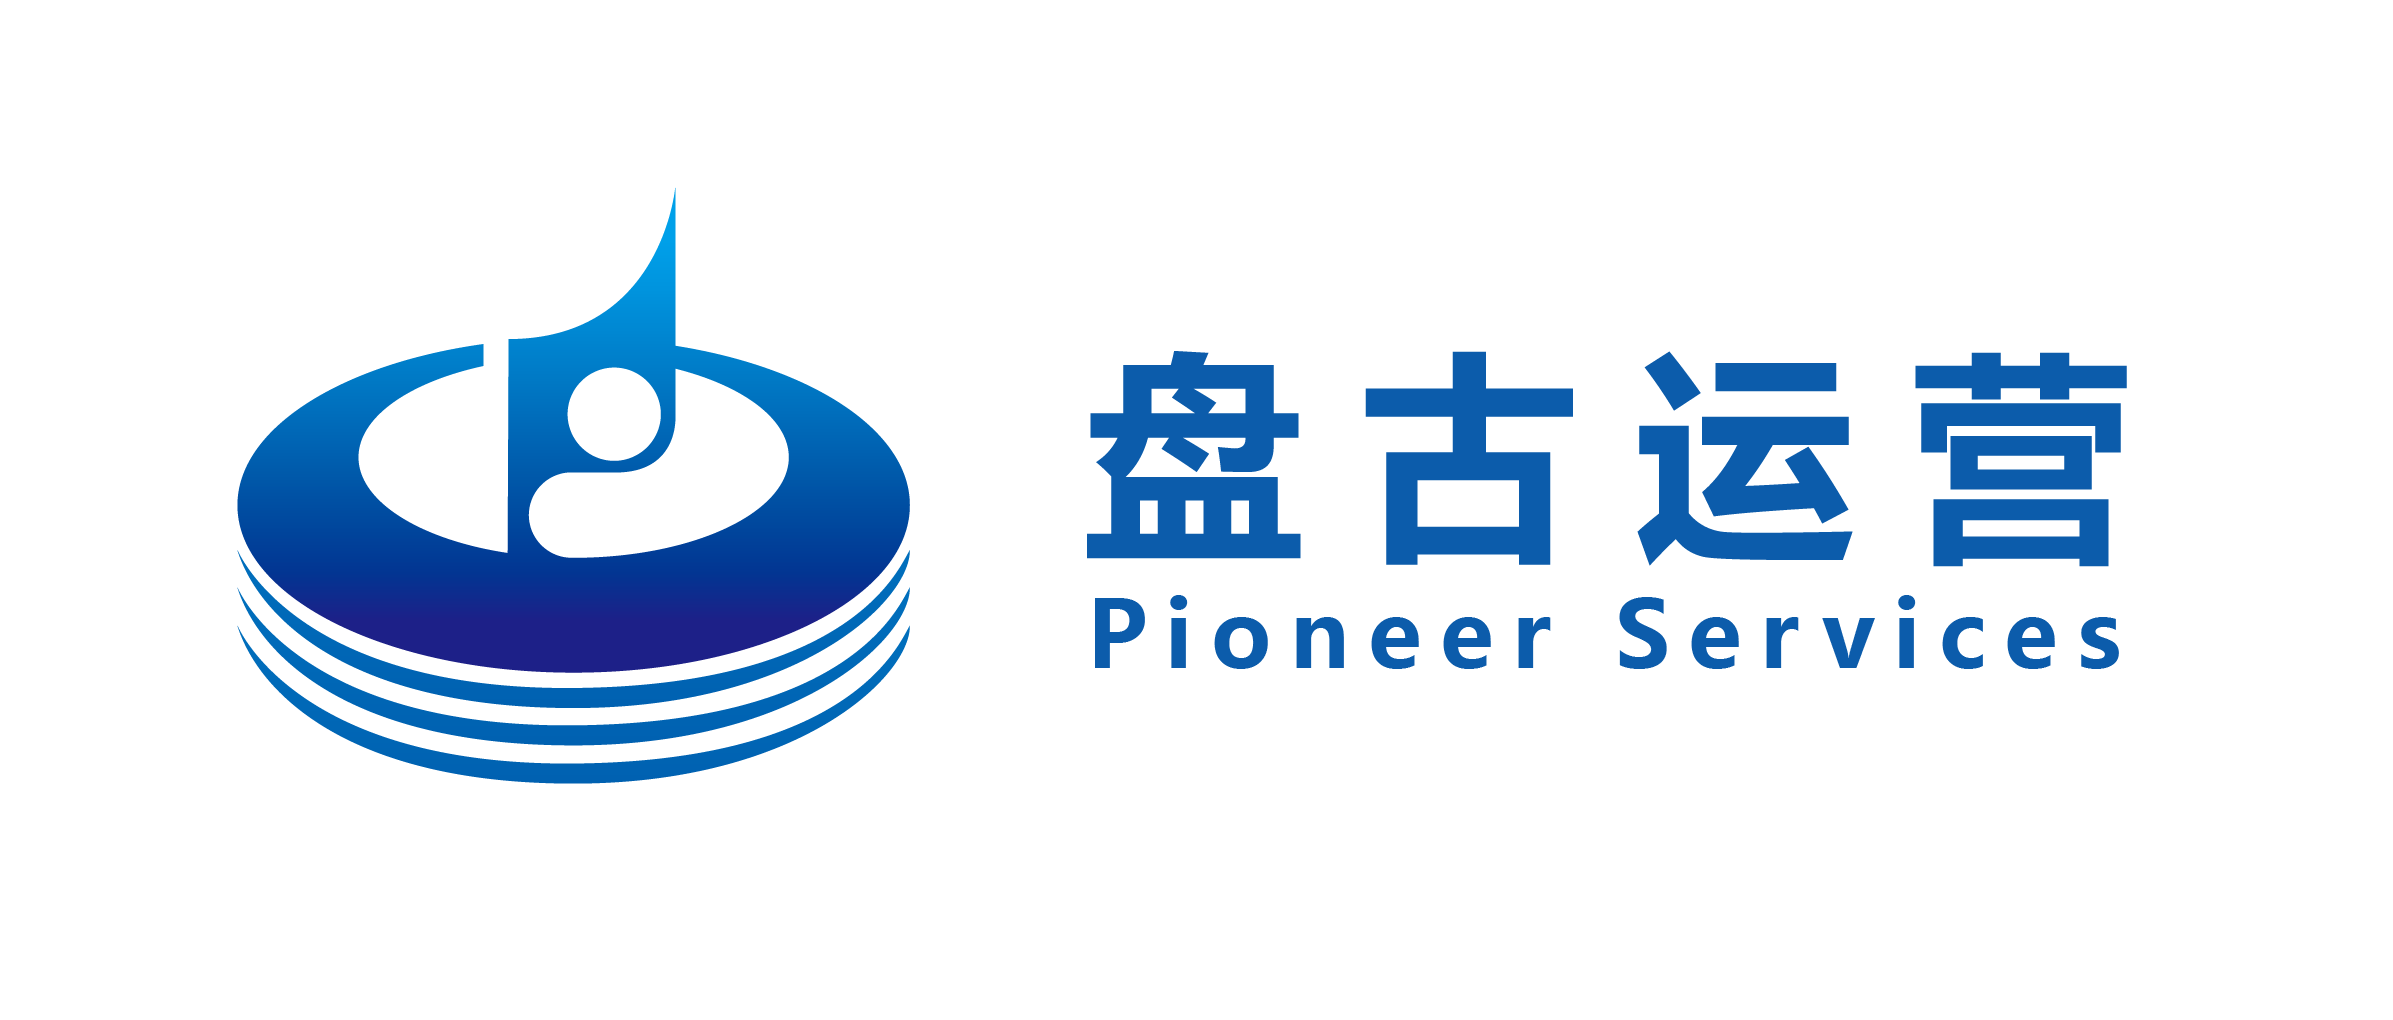 Shenzhen-Pioneer-Operation-Service-Co-Ltd-1-logo